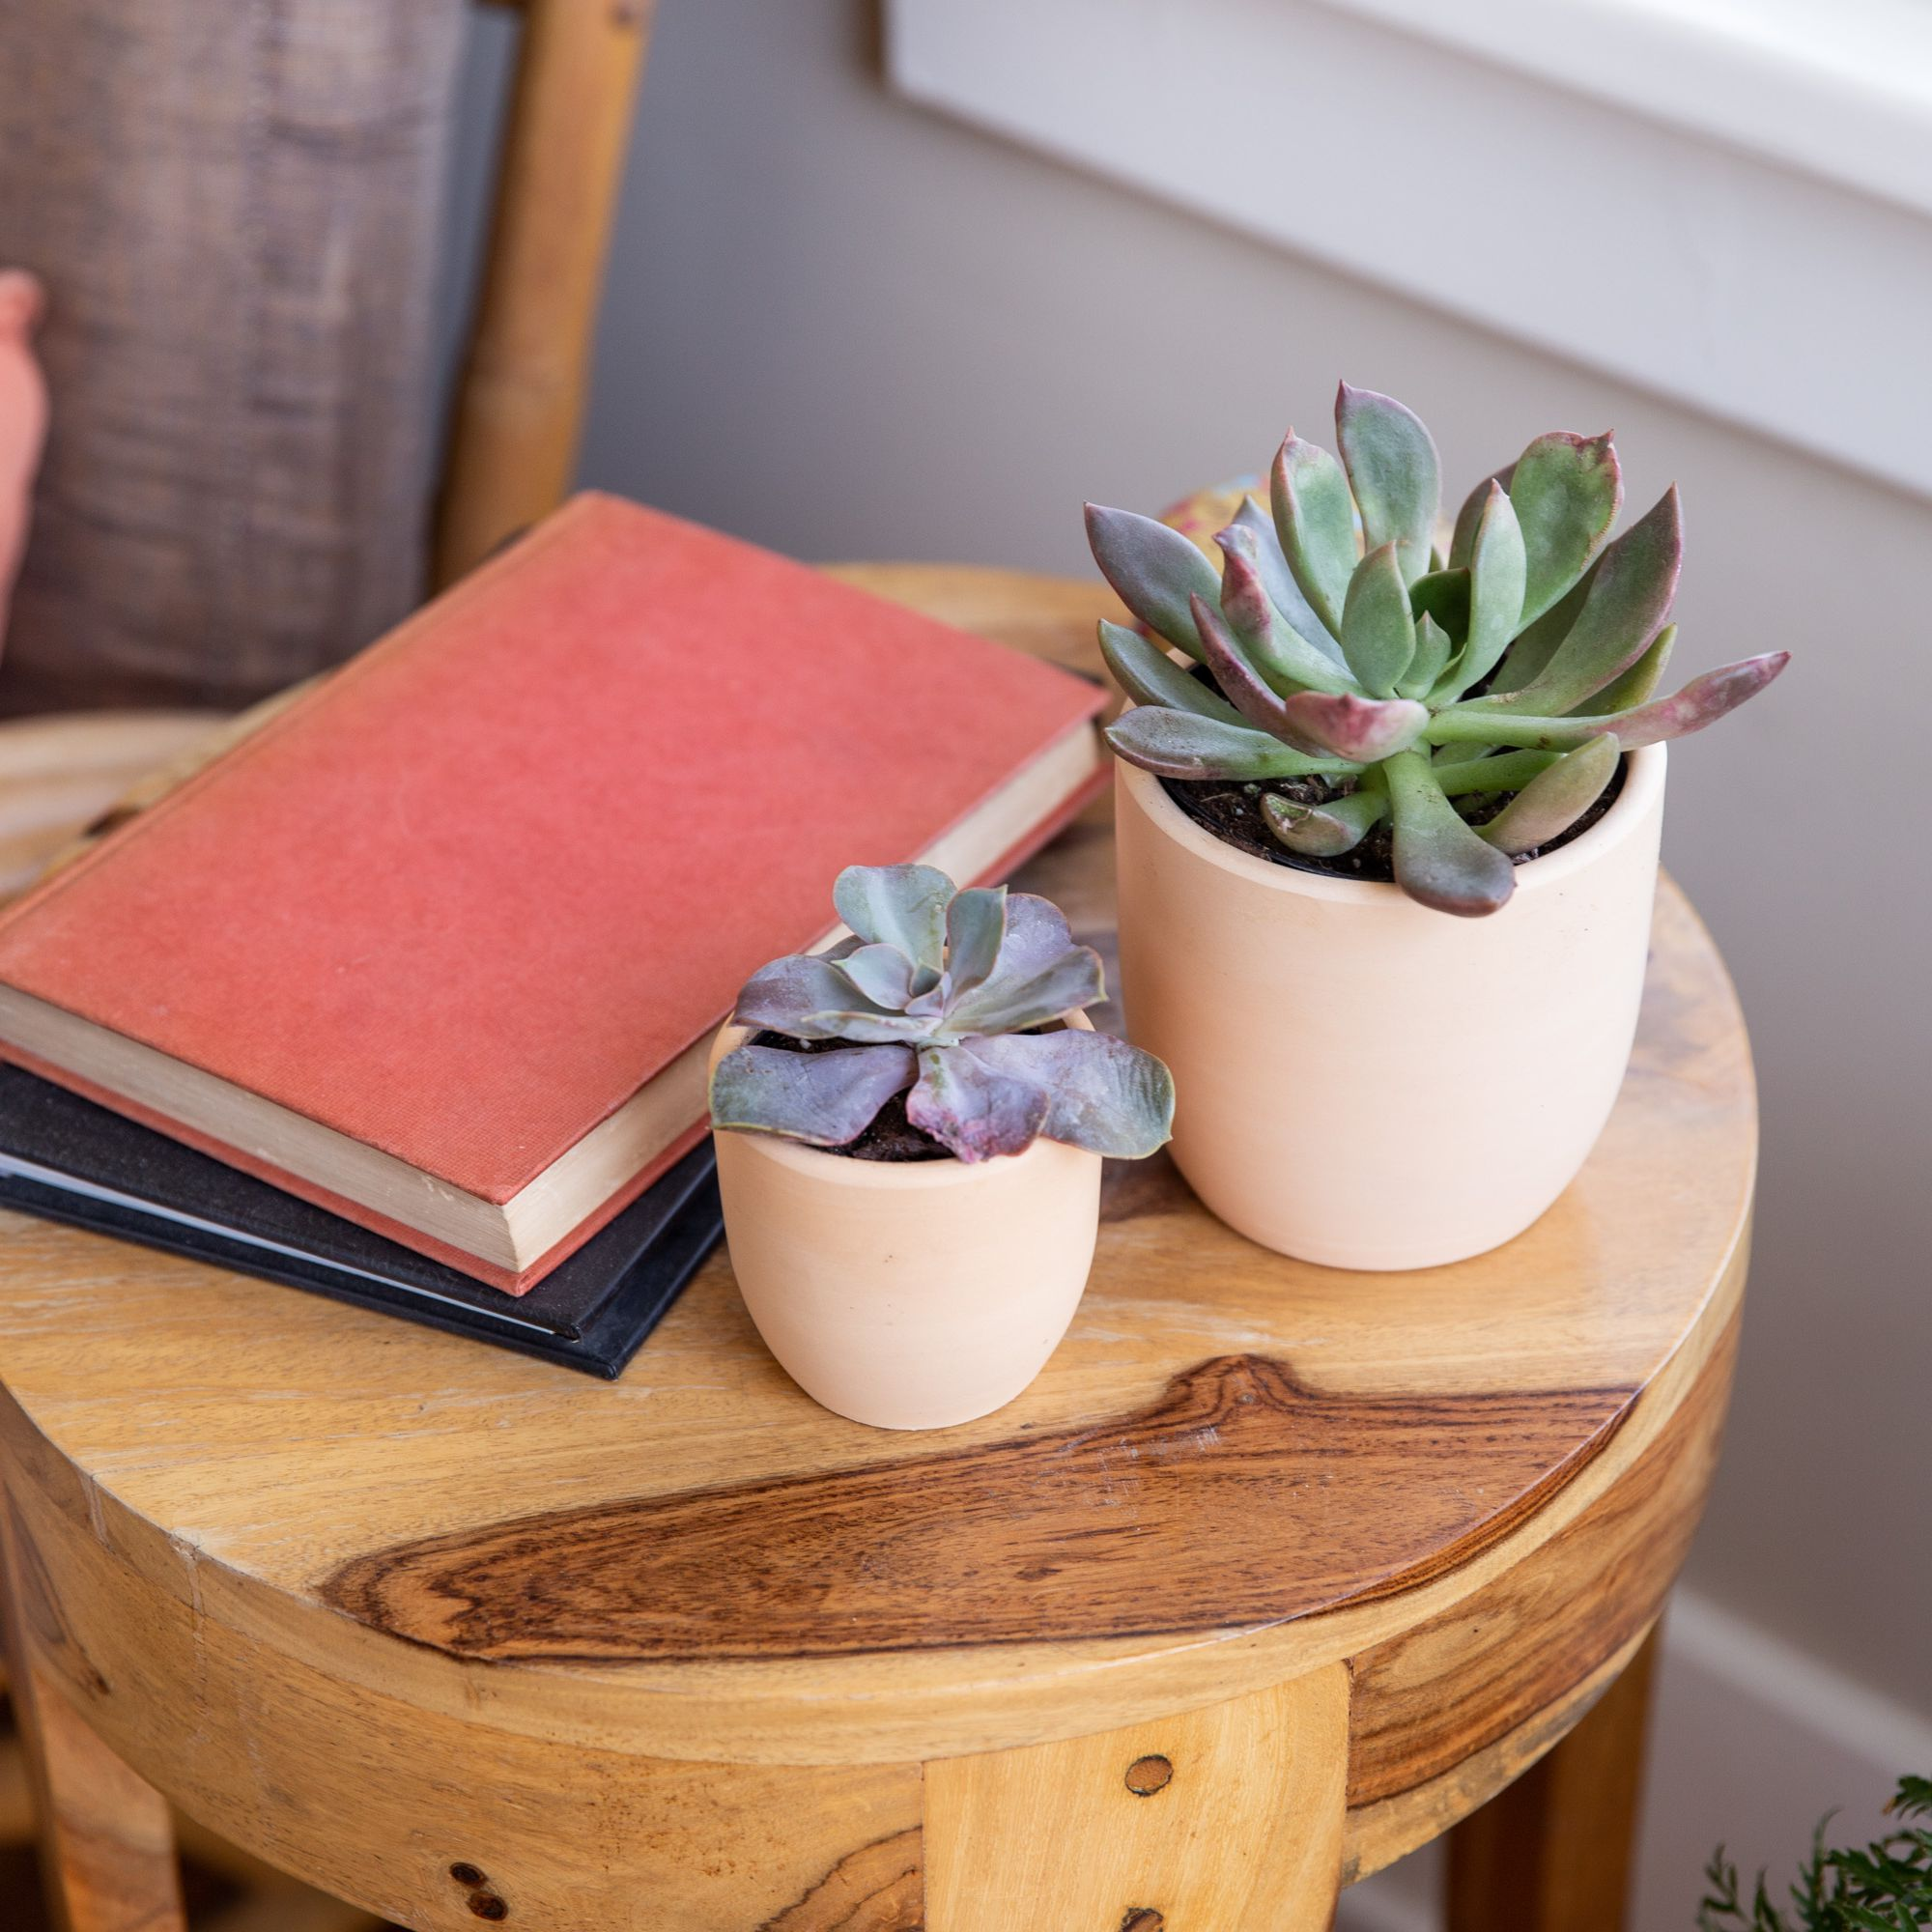 How To Grow And Care For Echeveria Succulents